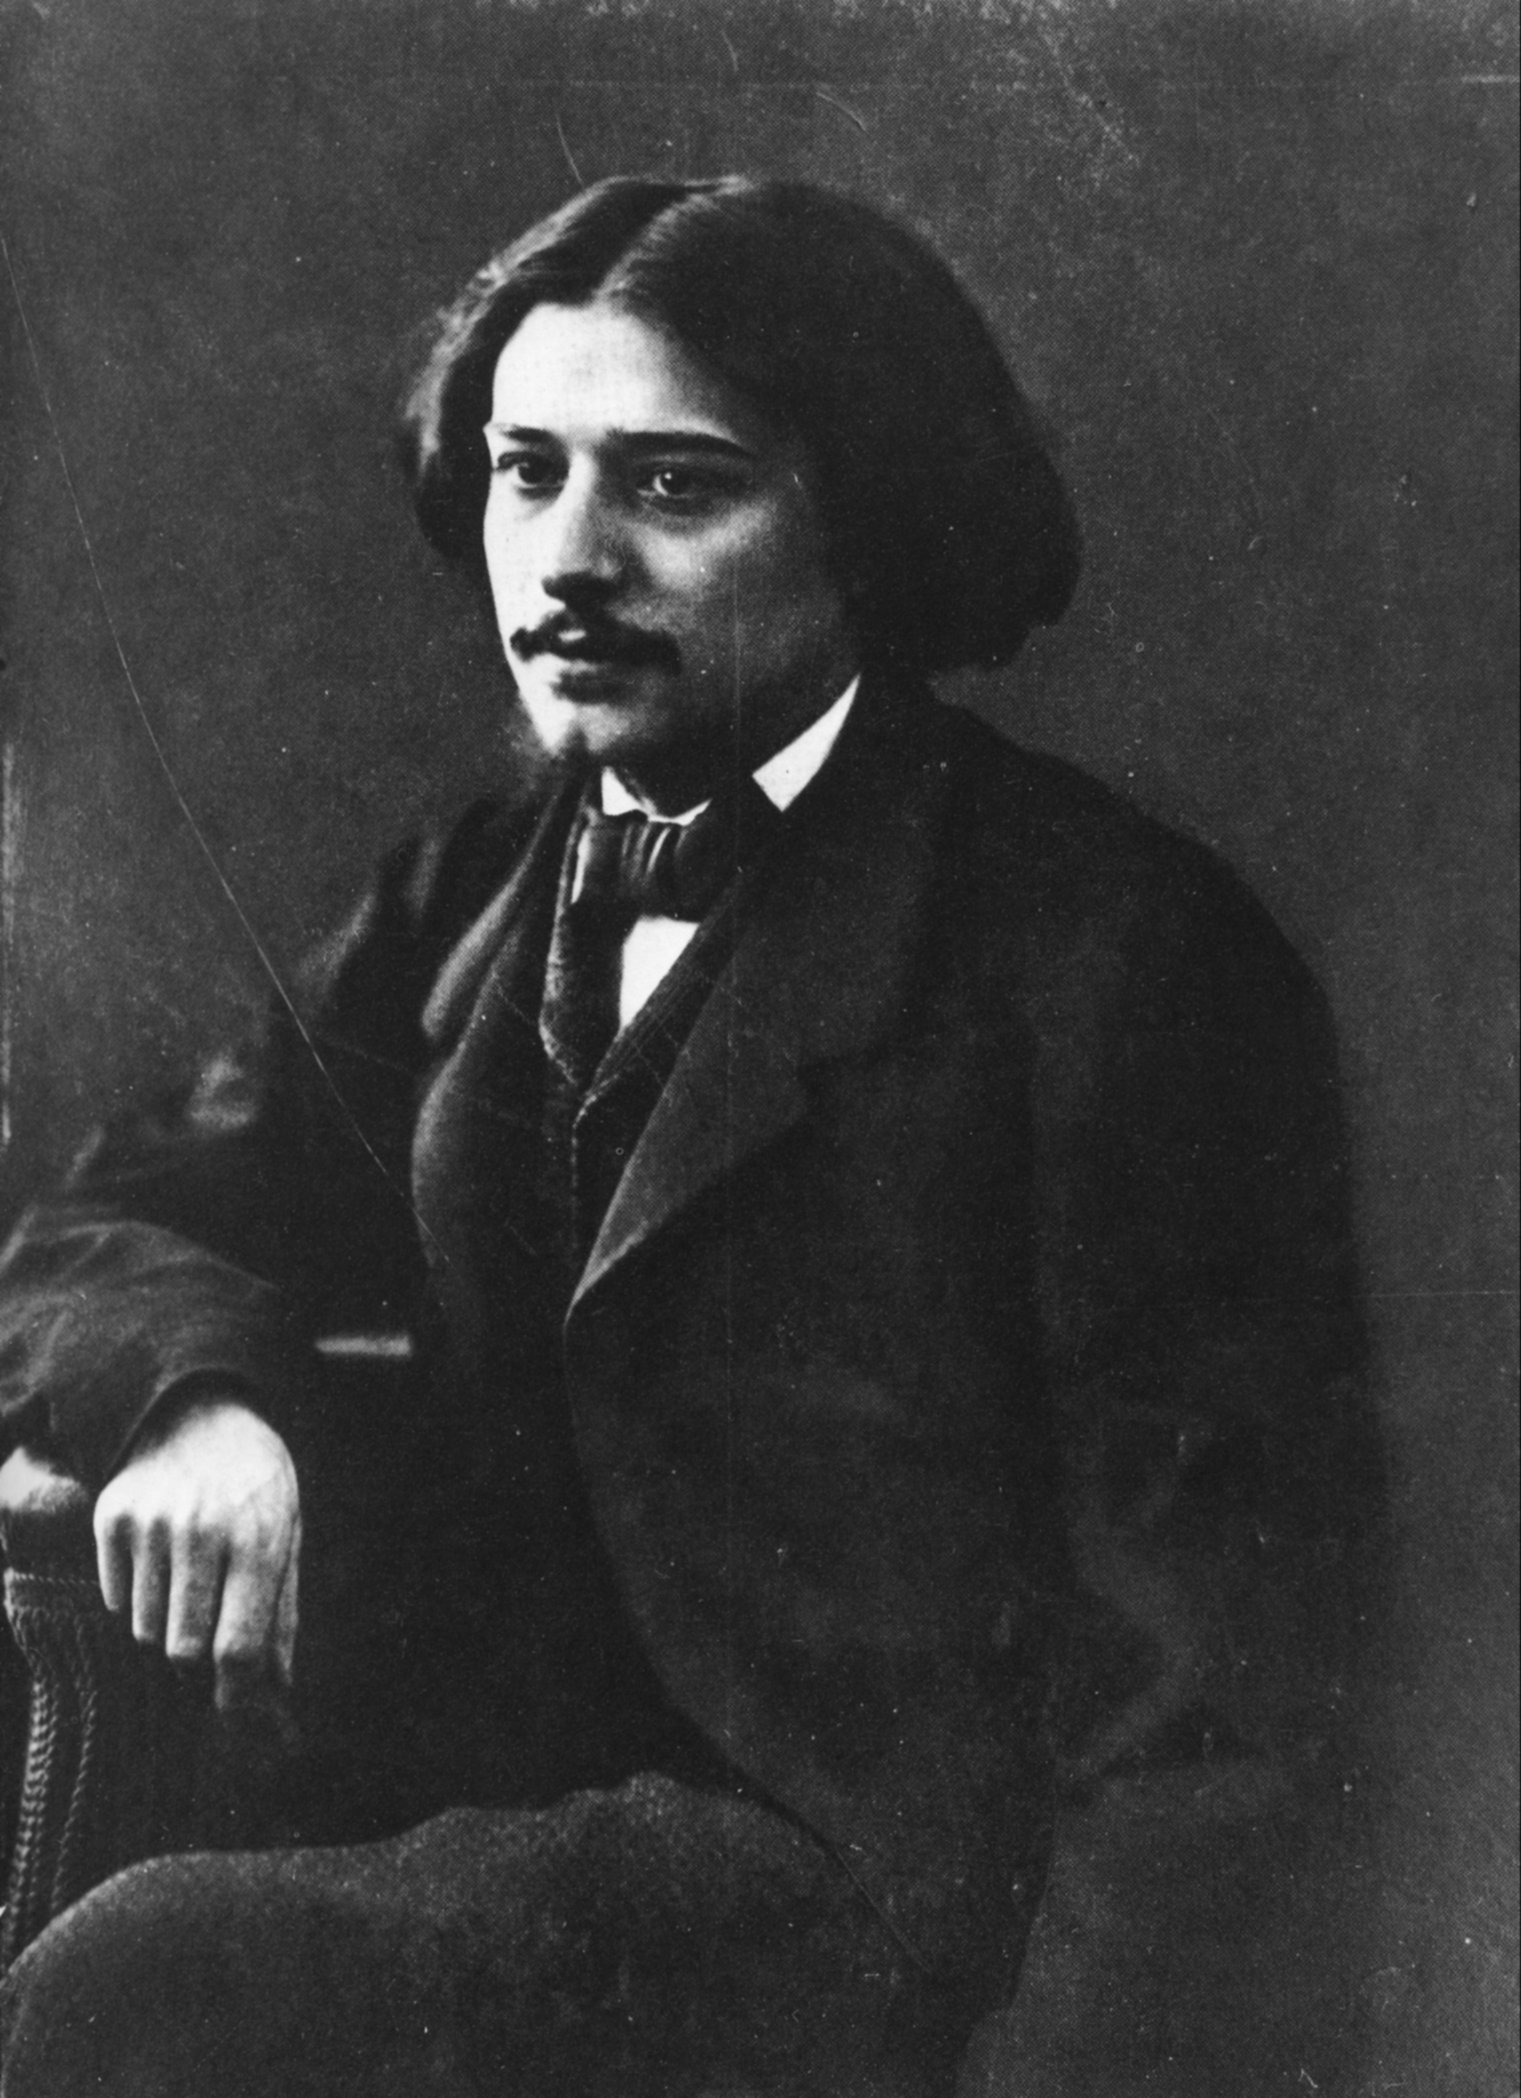 Photo of Alphonse Daudet